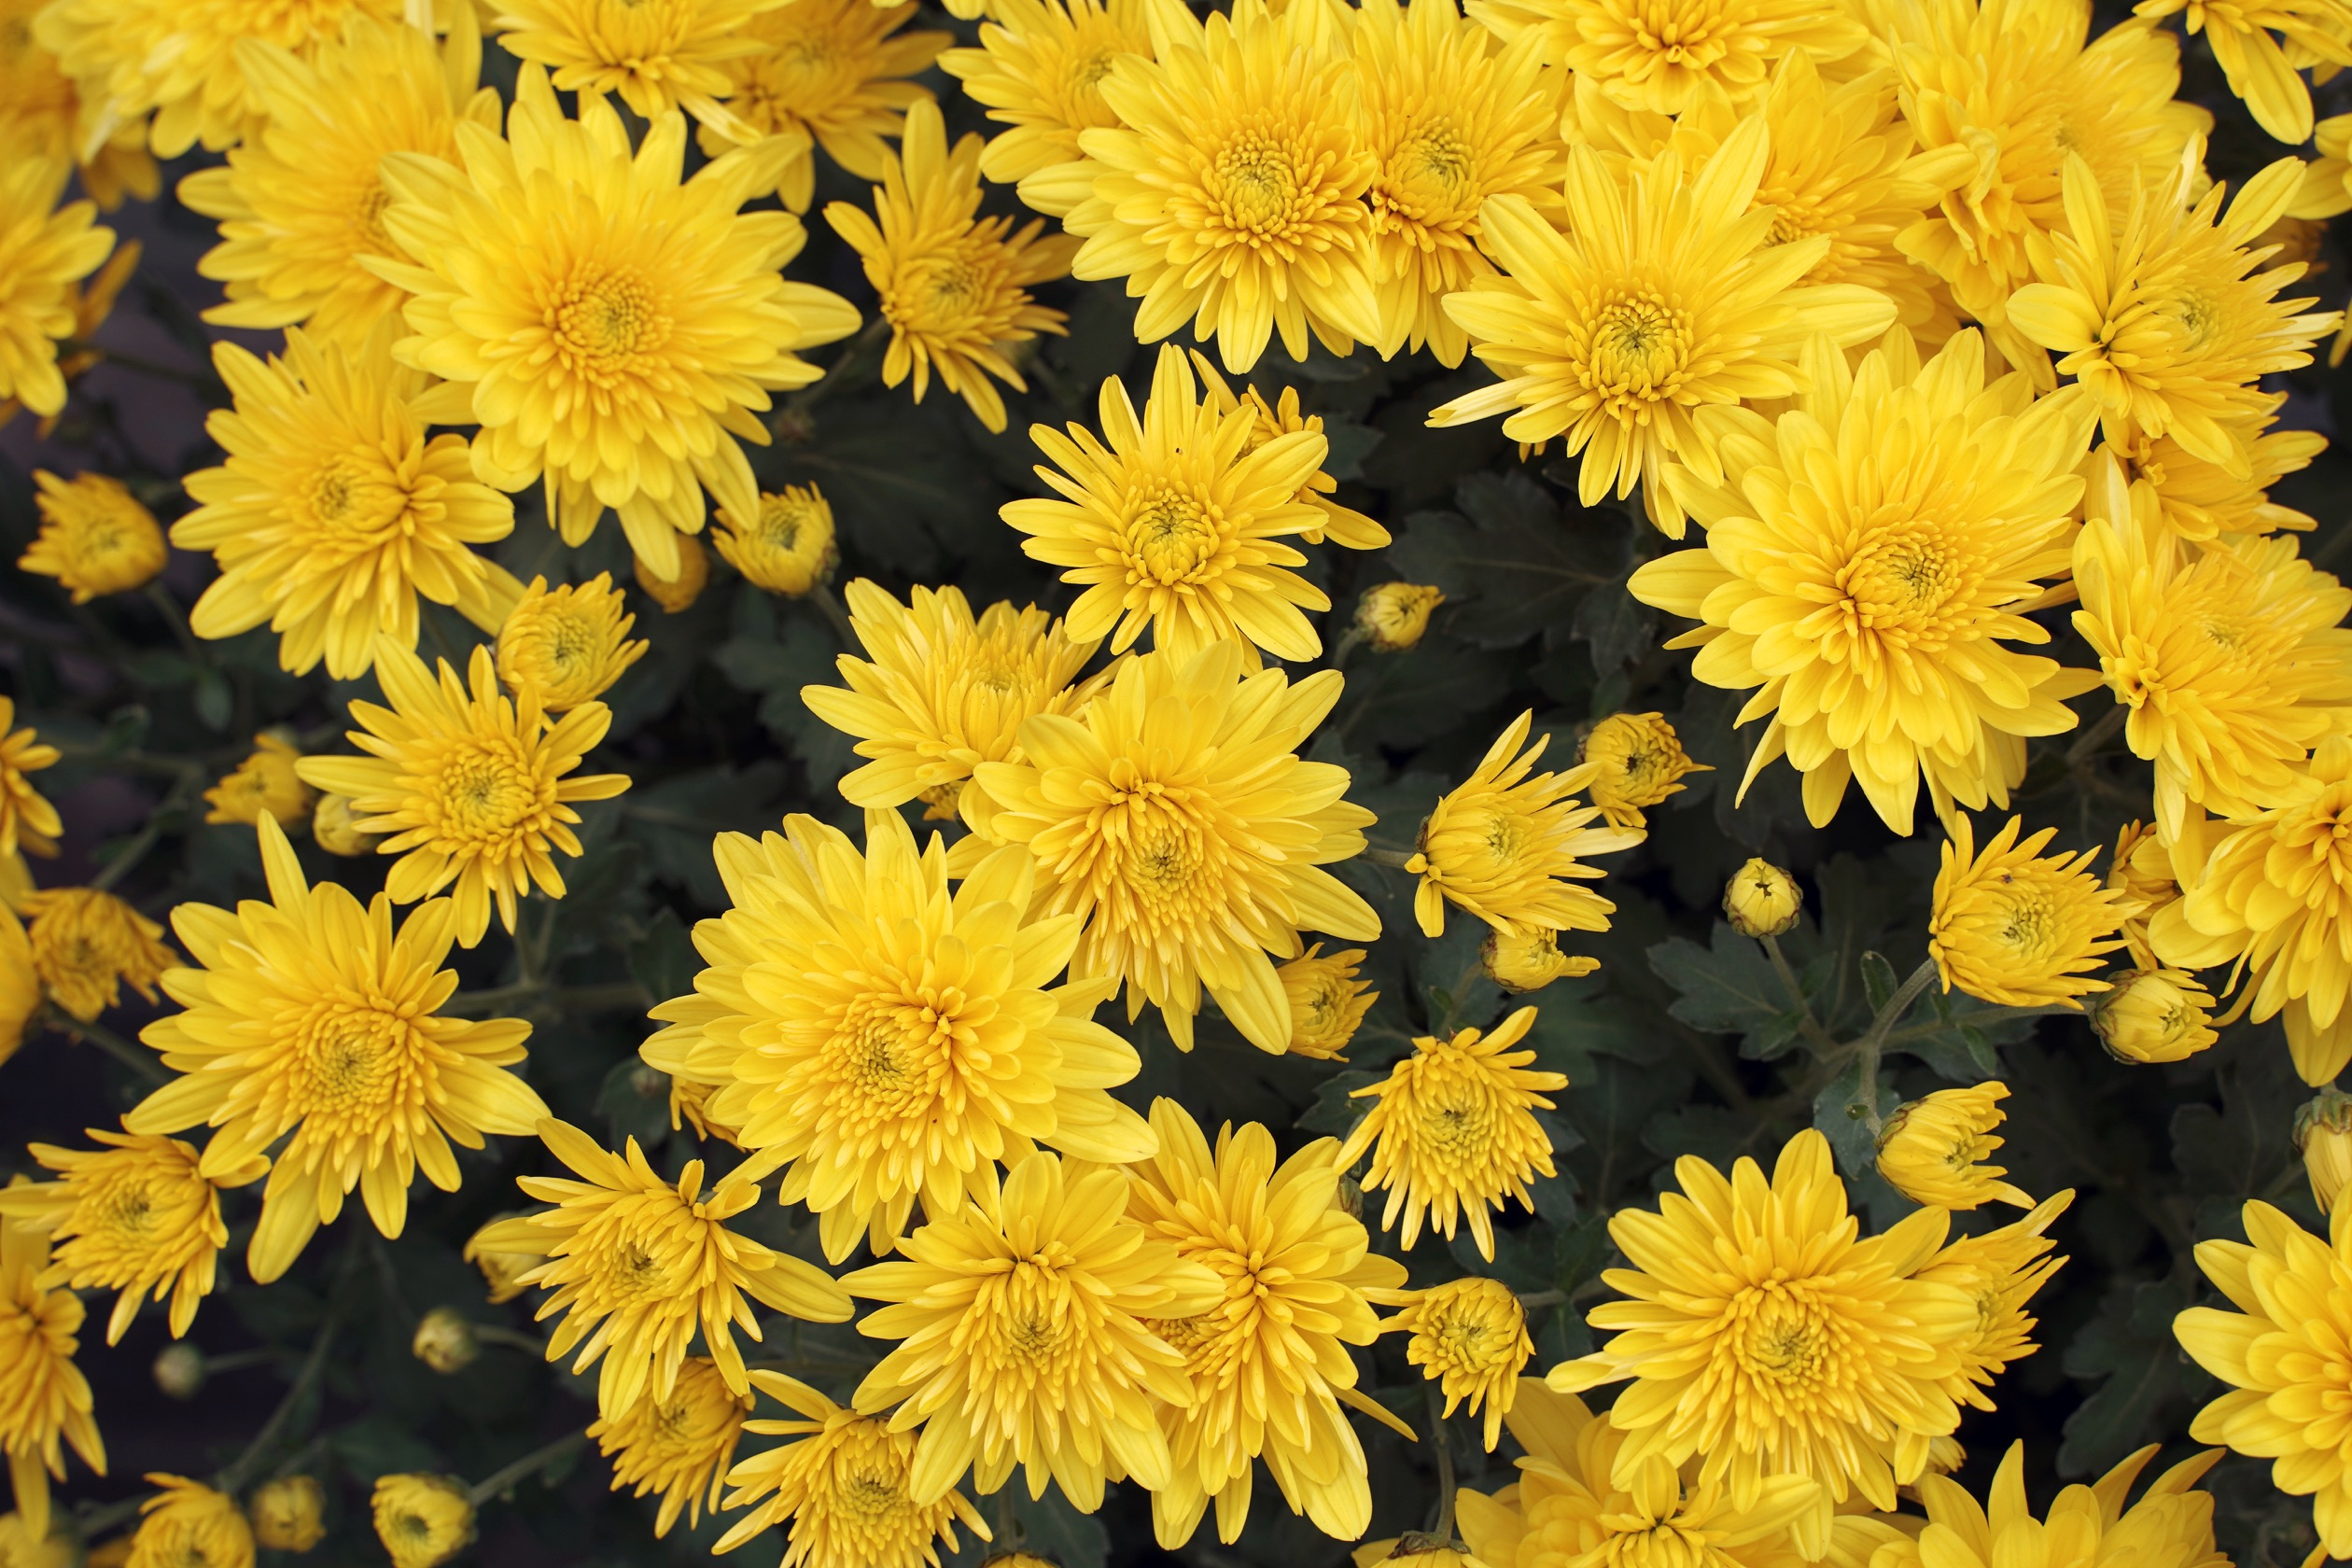 A group of yellow flowers in bloom.